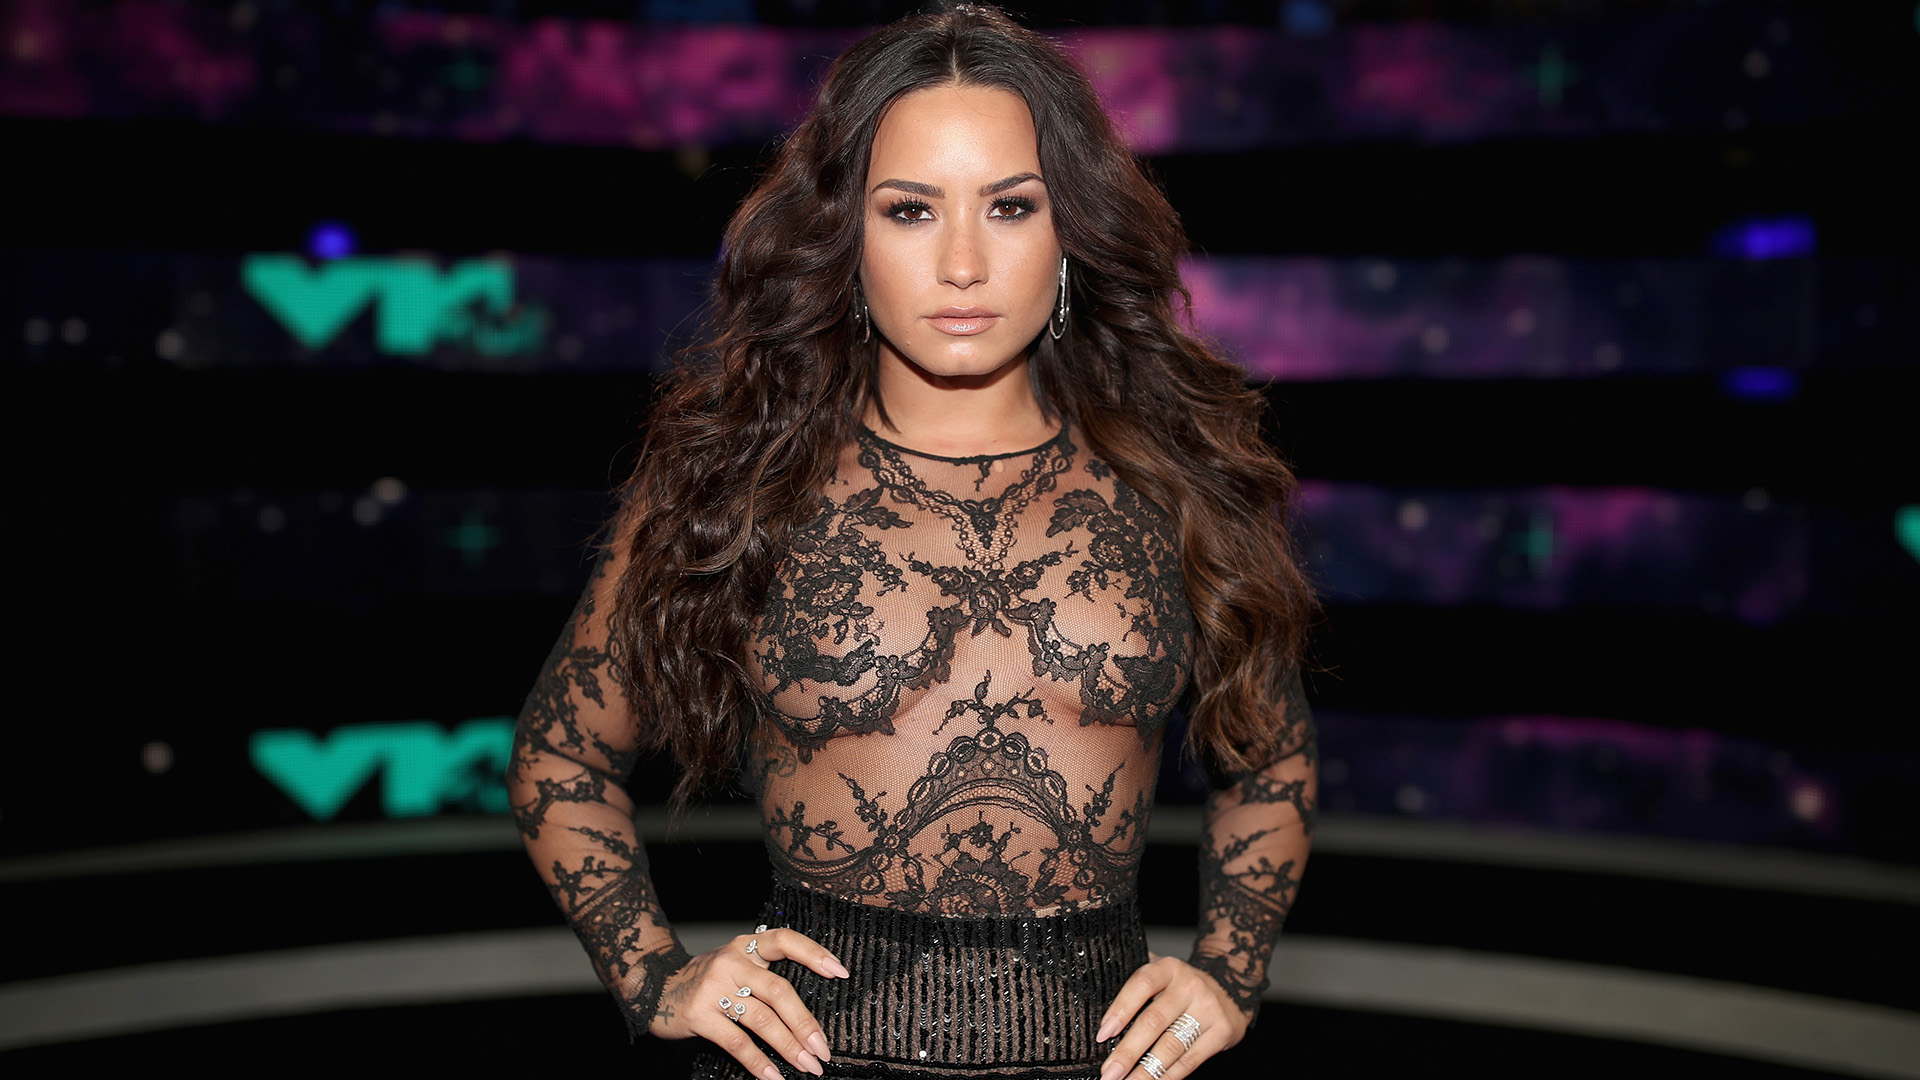 Demi Lovato's Grammys Return Marks A Major Comeback